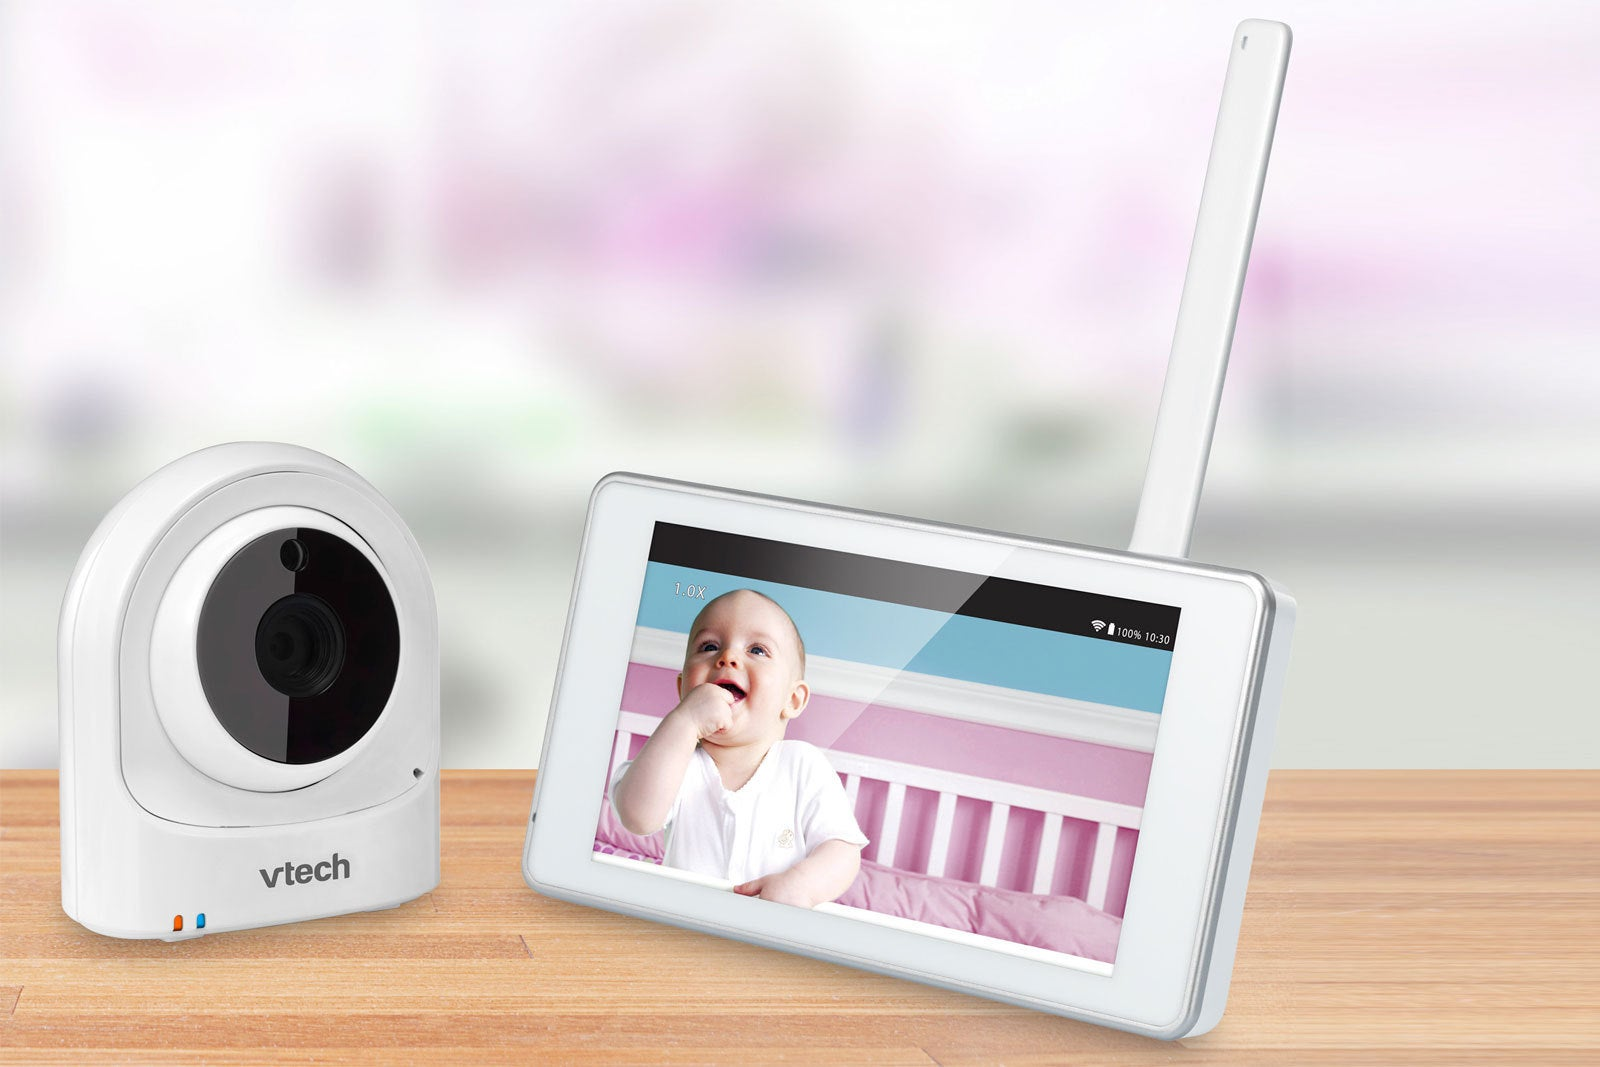 vtech vm981 safe sound expandable hd video baby monitor review not qui. Black Bedroom Furniture Sets. Home Design Ideas